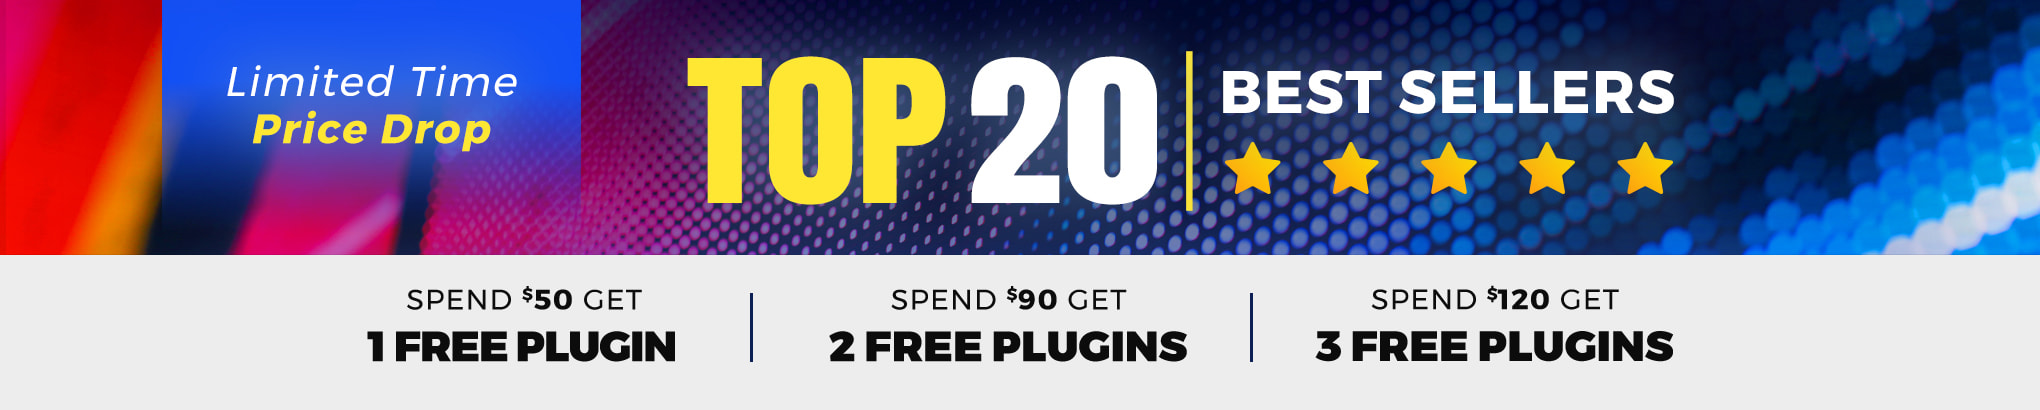 Top 20 Best Sellers – Limited Time Price Drop